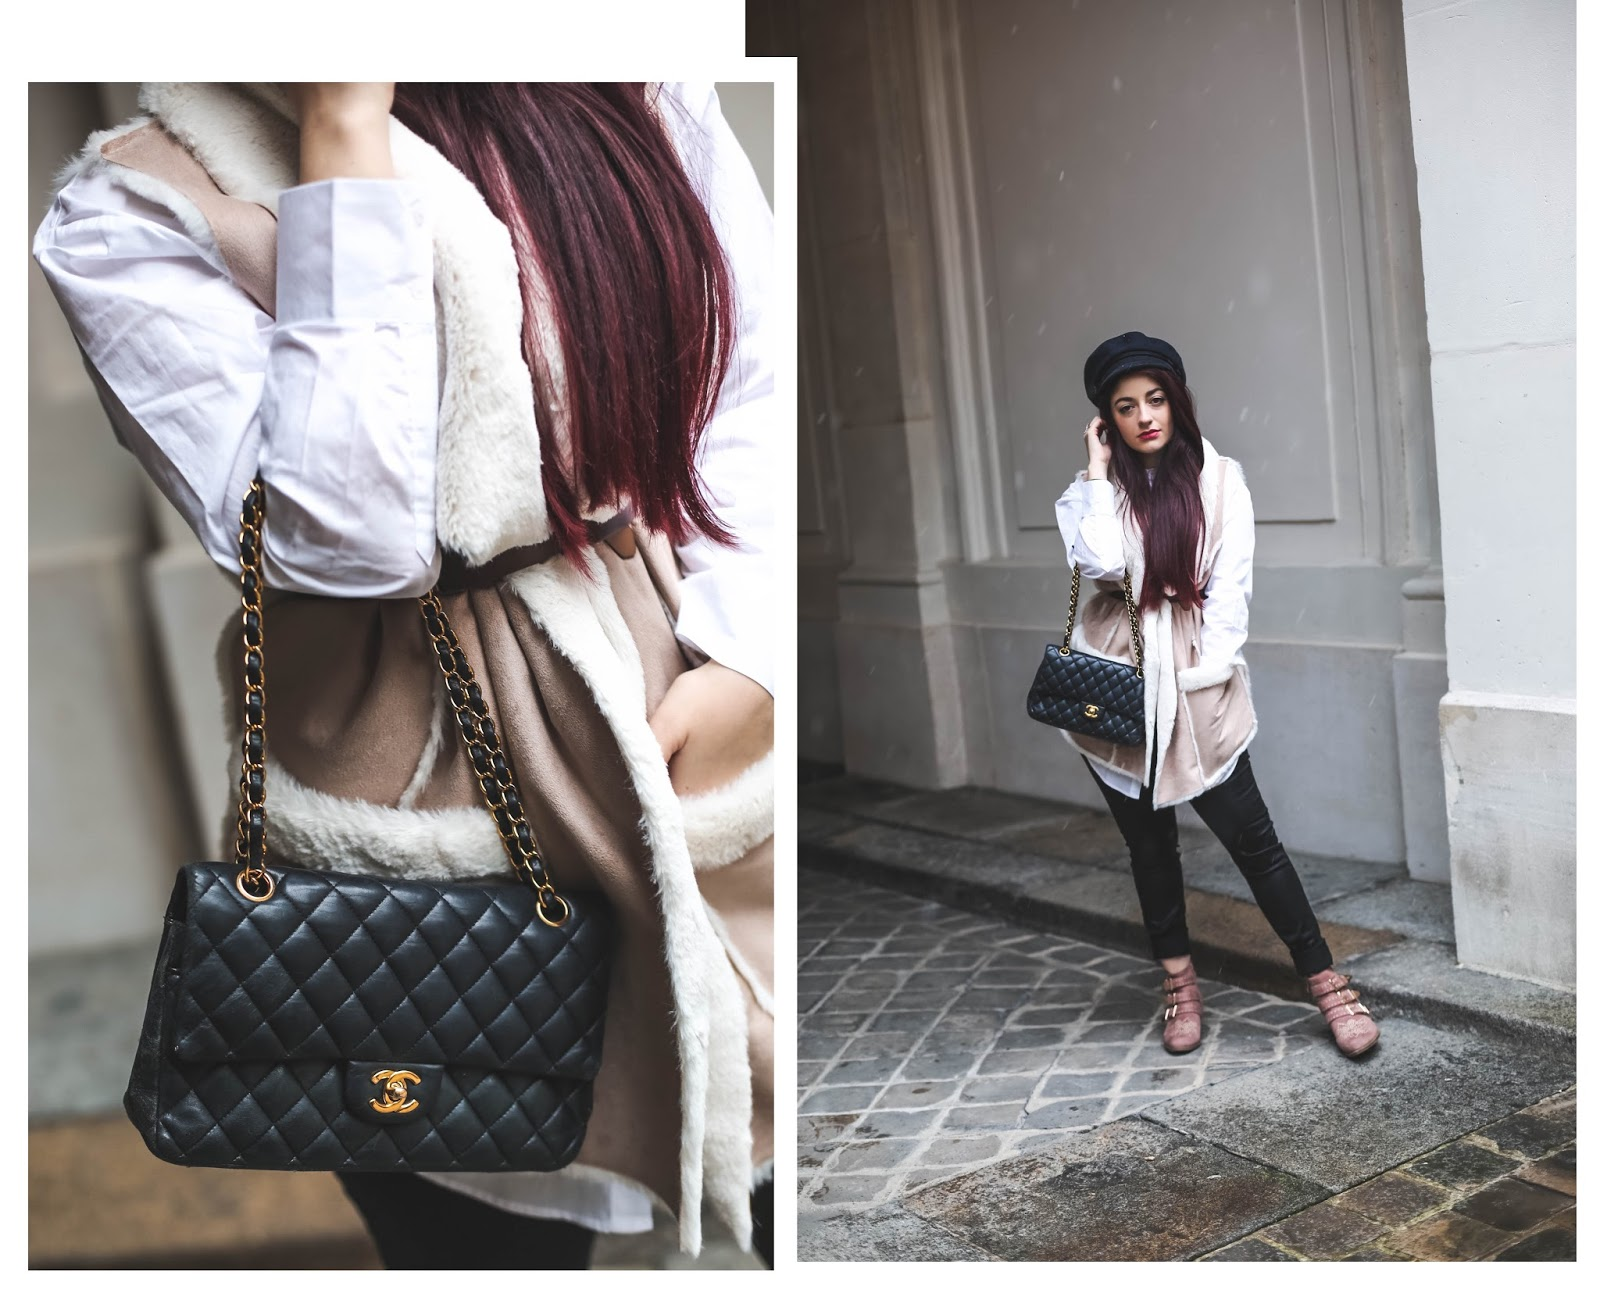 sac timeless Chanel blog mode paris